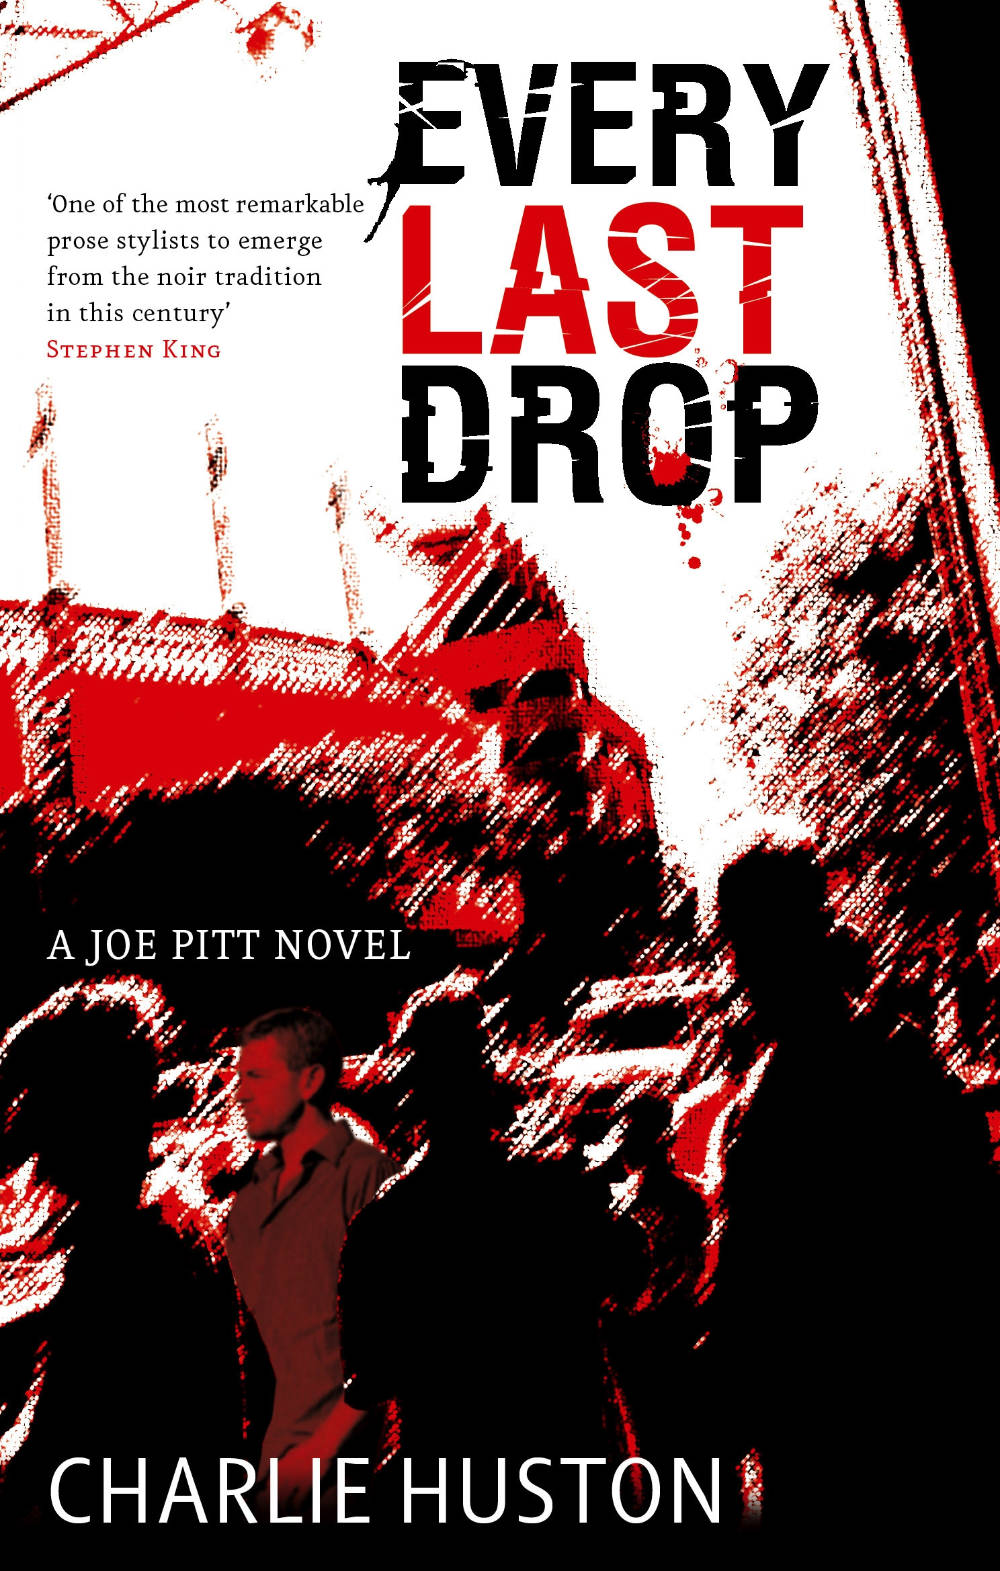 Book Review: Every Last Drop